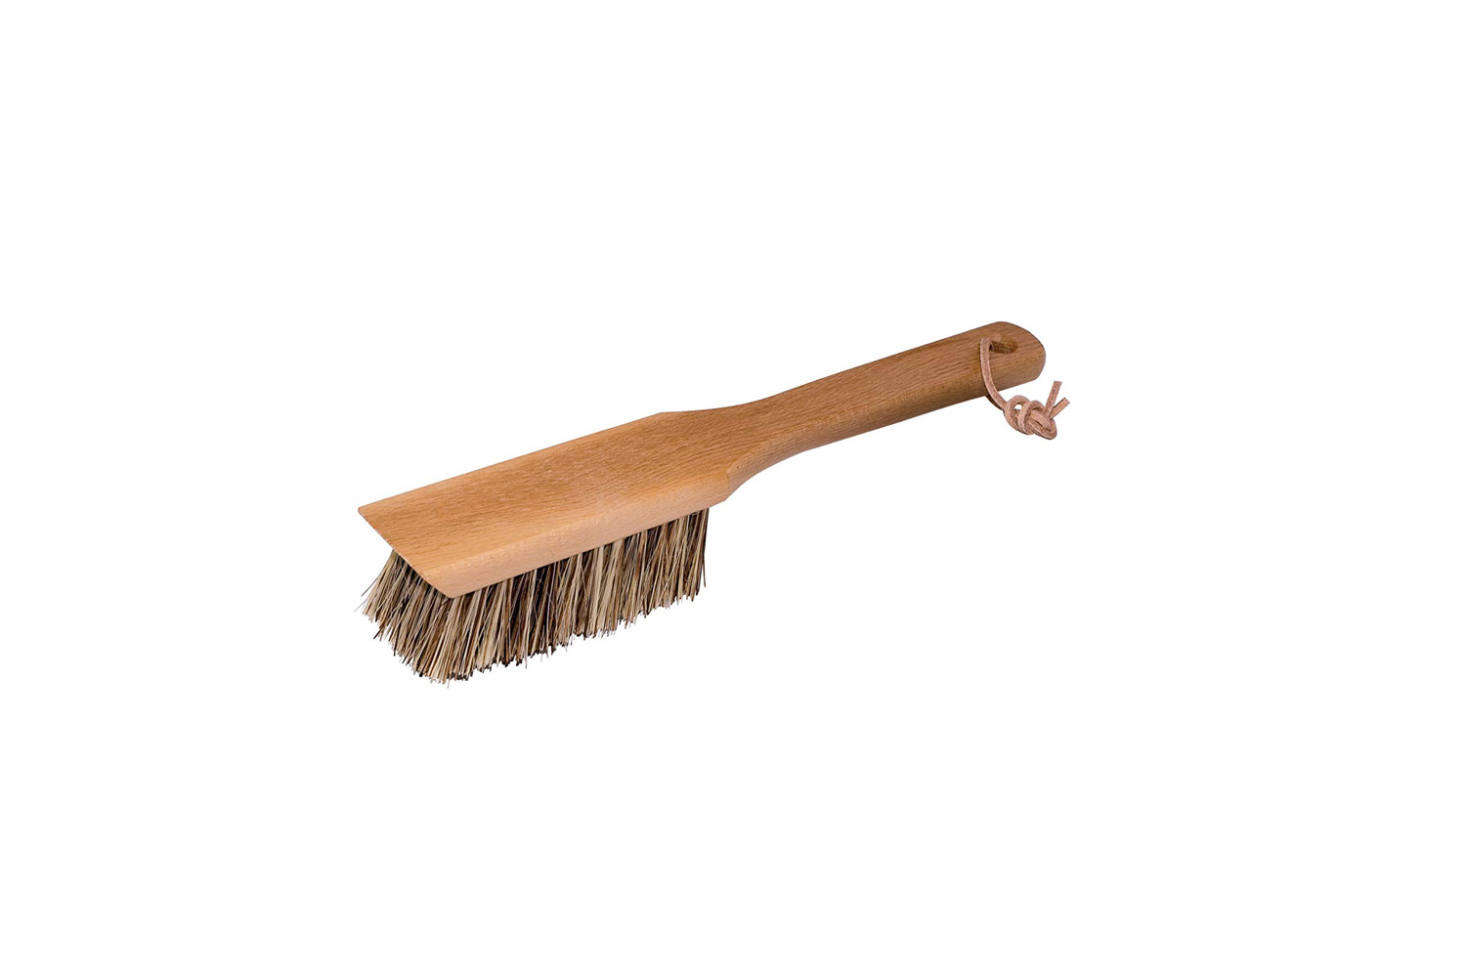 The Redecker Union Fiber Garden Tool Brush with an oiled beechwood handle is made with strong and water-resistant plant-based bristles; $14.99 on Amazon Prime.